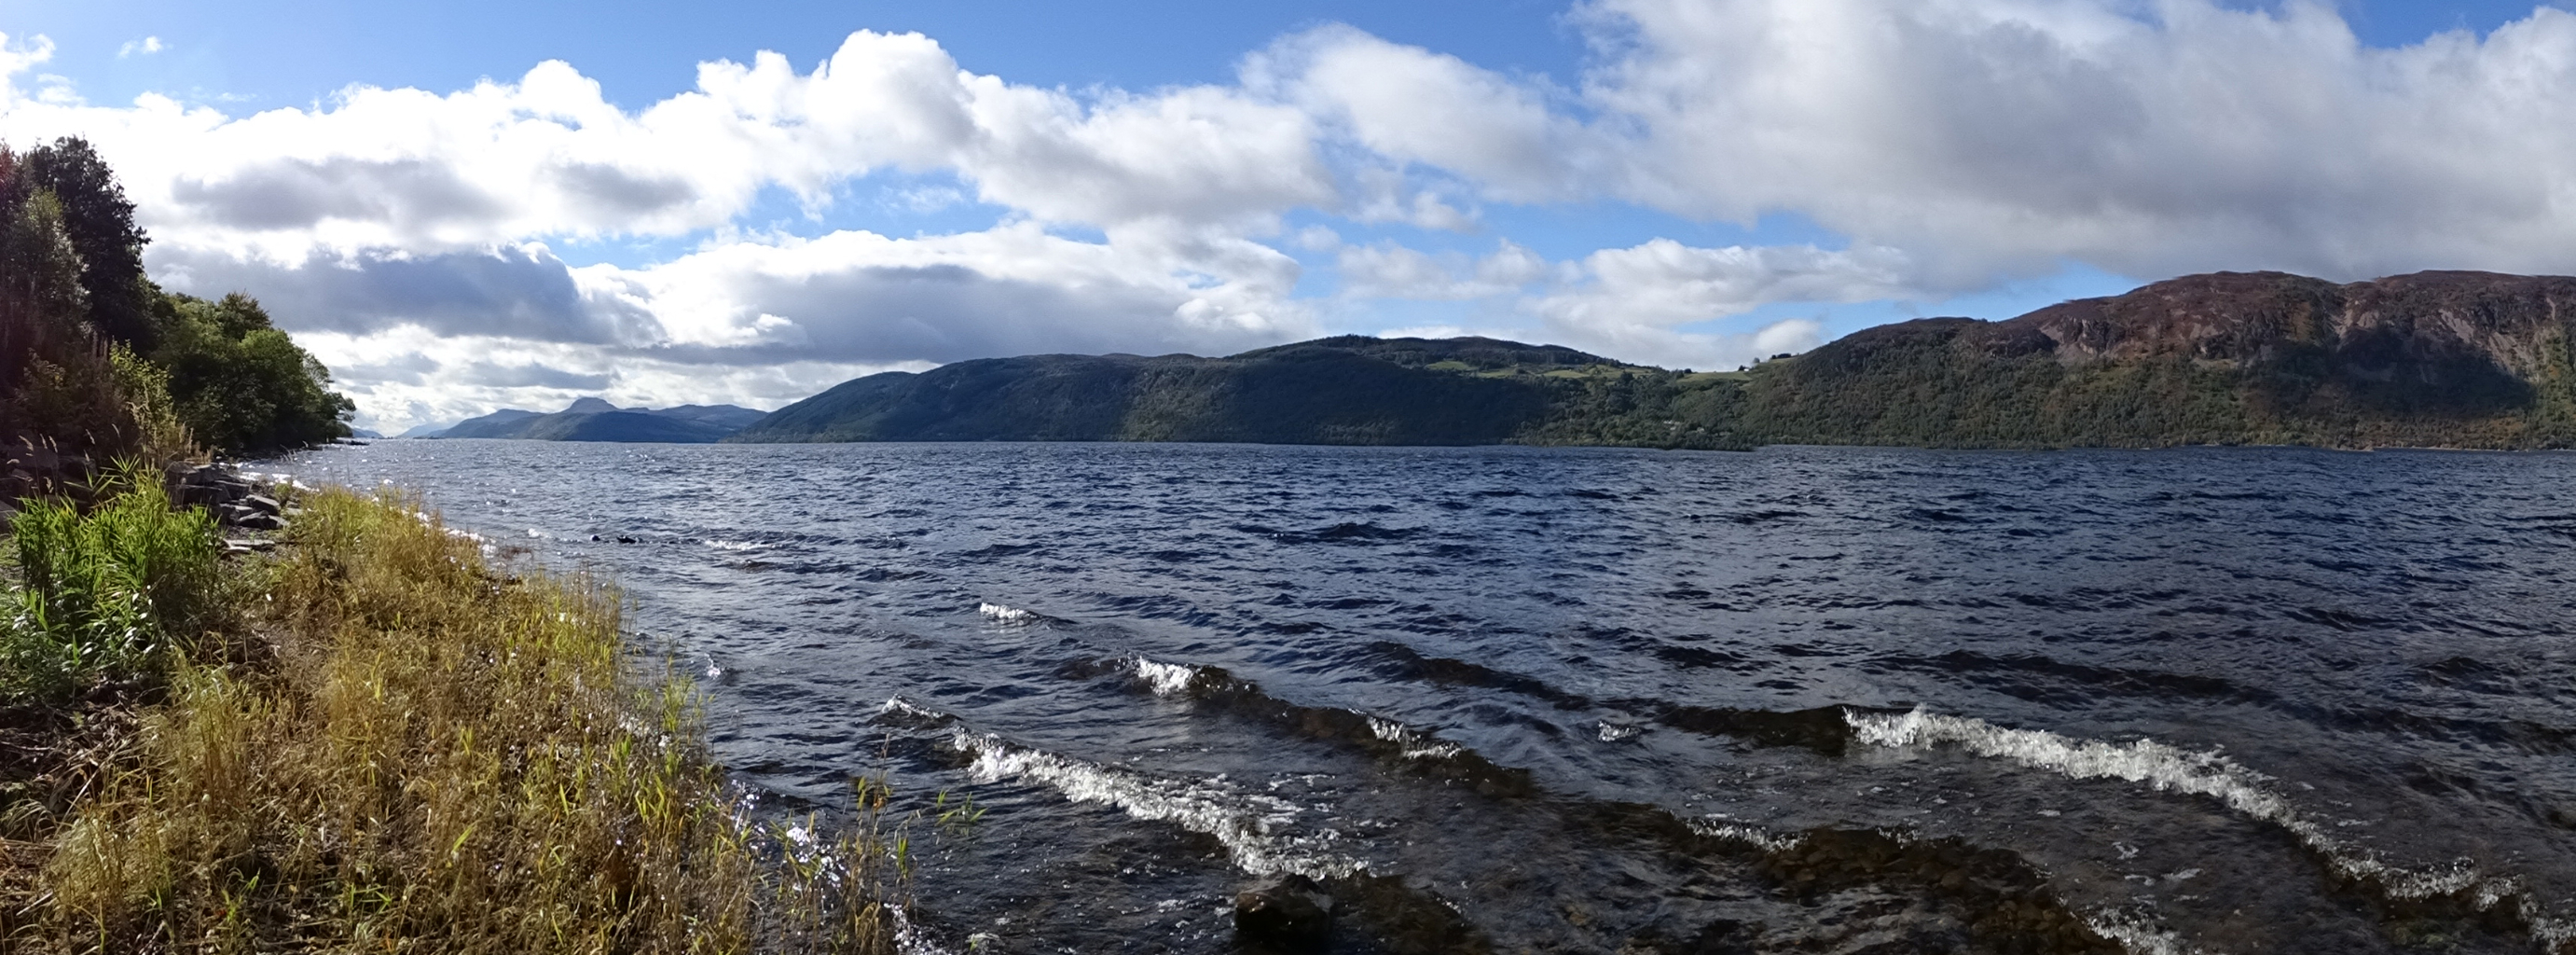 loch ness chat rooms Loch ness's best 100% free buddhist dating site meet thousands of single buddhists in loch ness with mingle2's free buddhist personal ads and chat rooms our network of buddhist men and women in loch ness is the perfect place to make buddhist friends or find a buddhist boyfriend or girlfriend in loch ness.